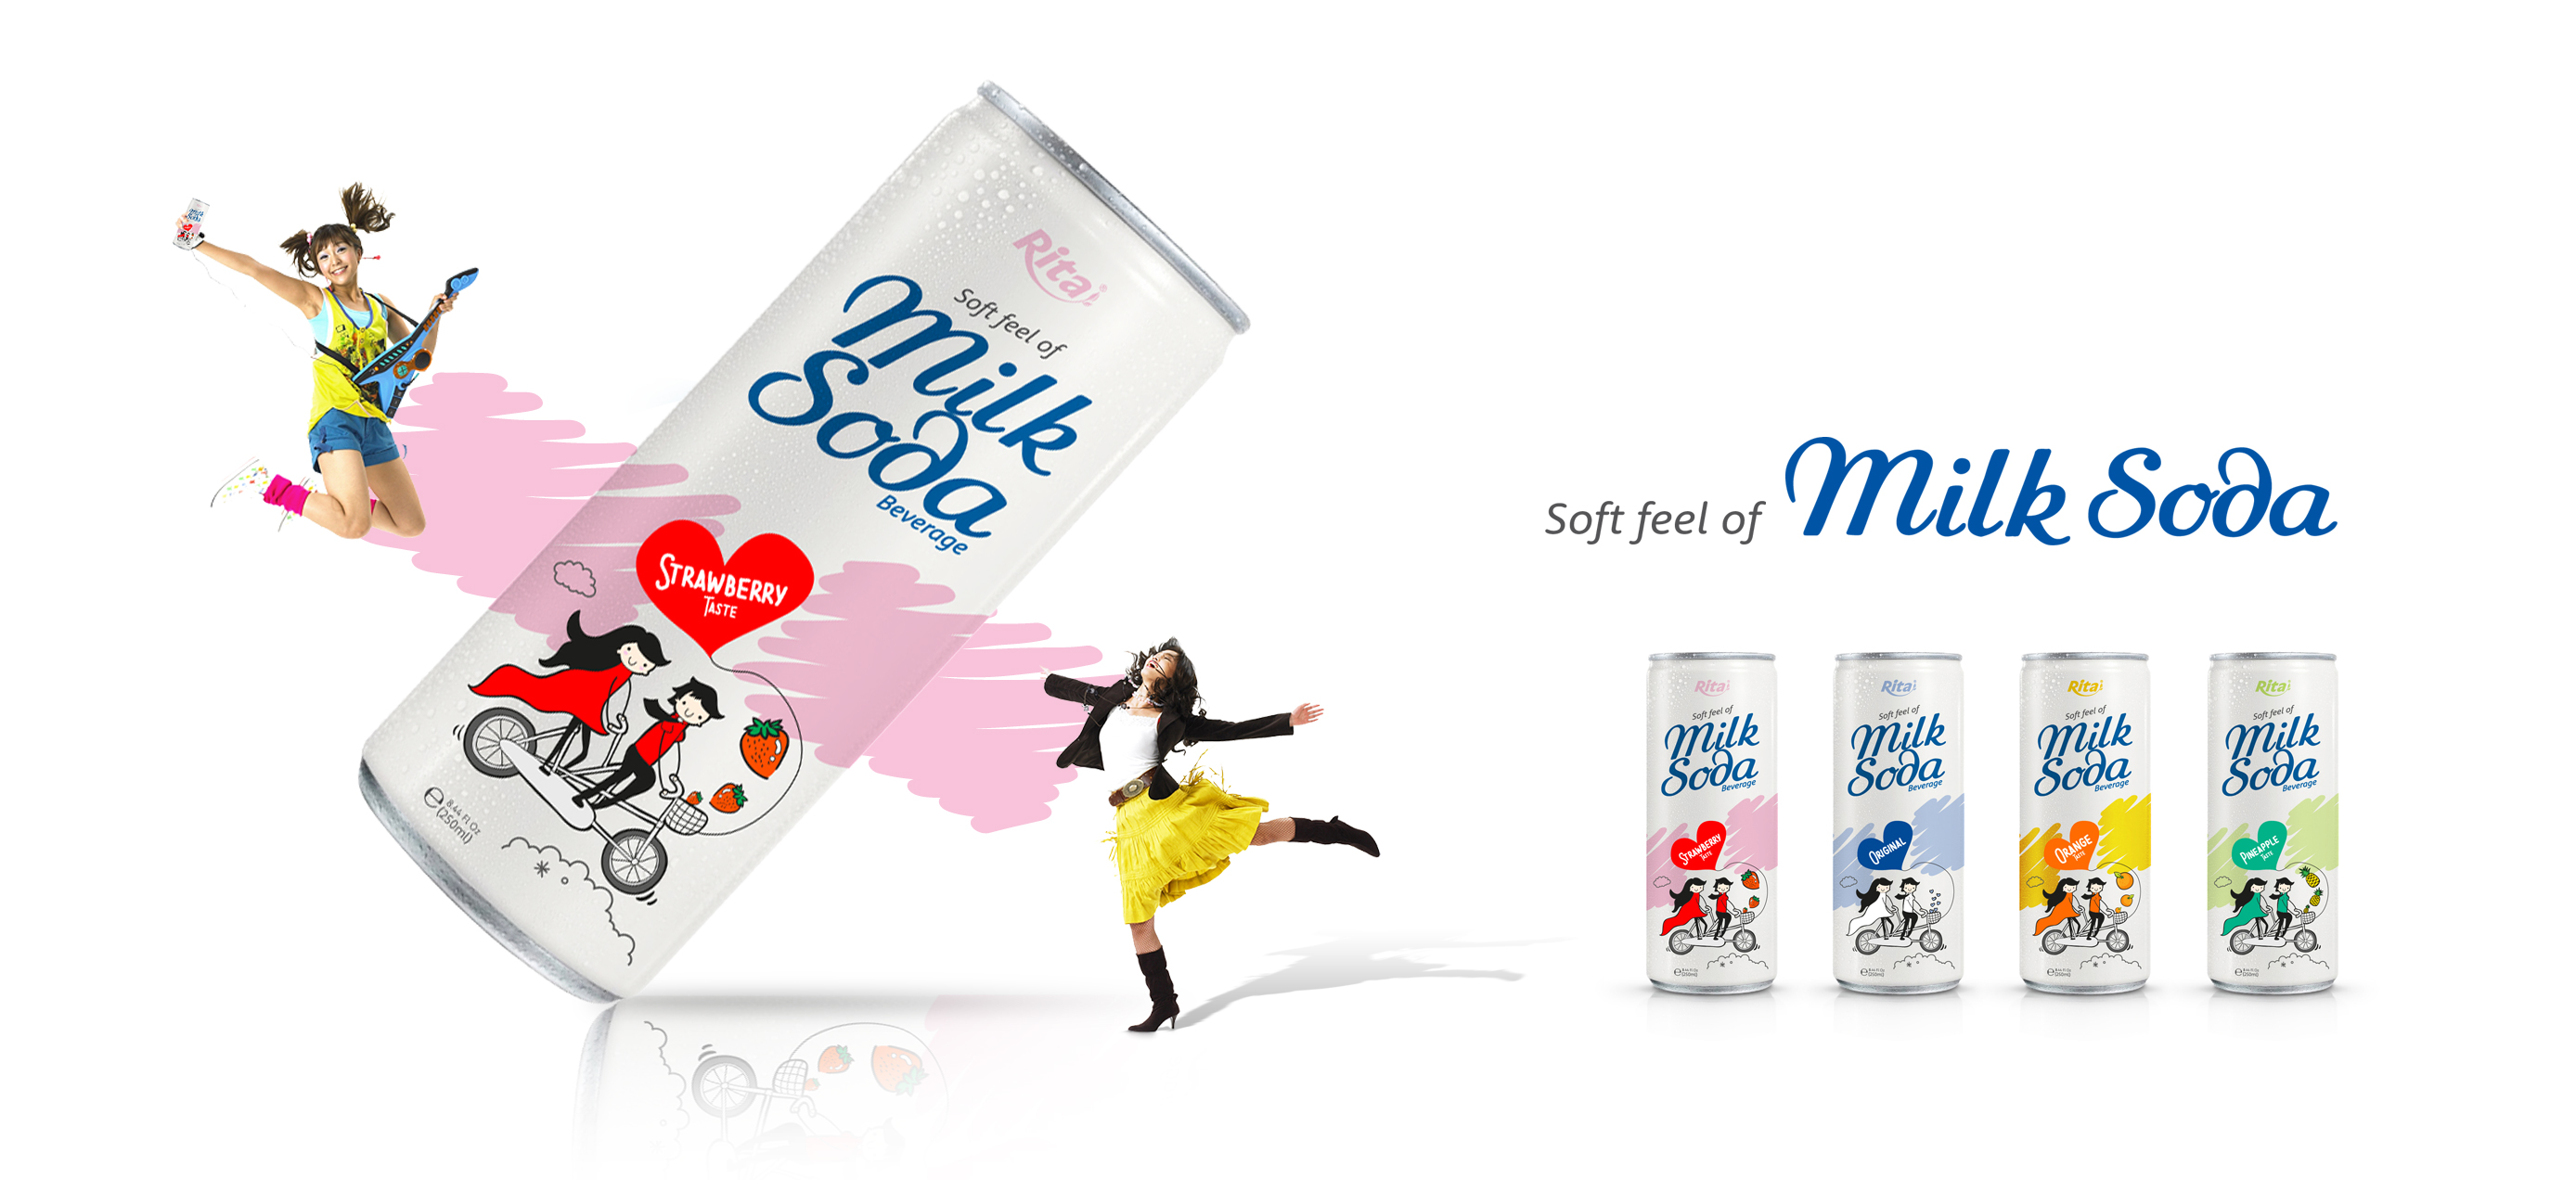 Poster Milk Soda from Rita beverage